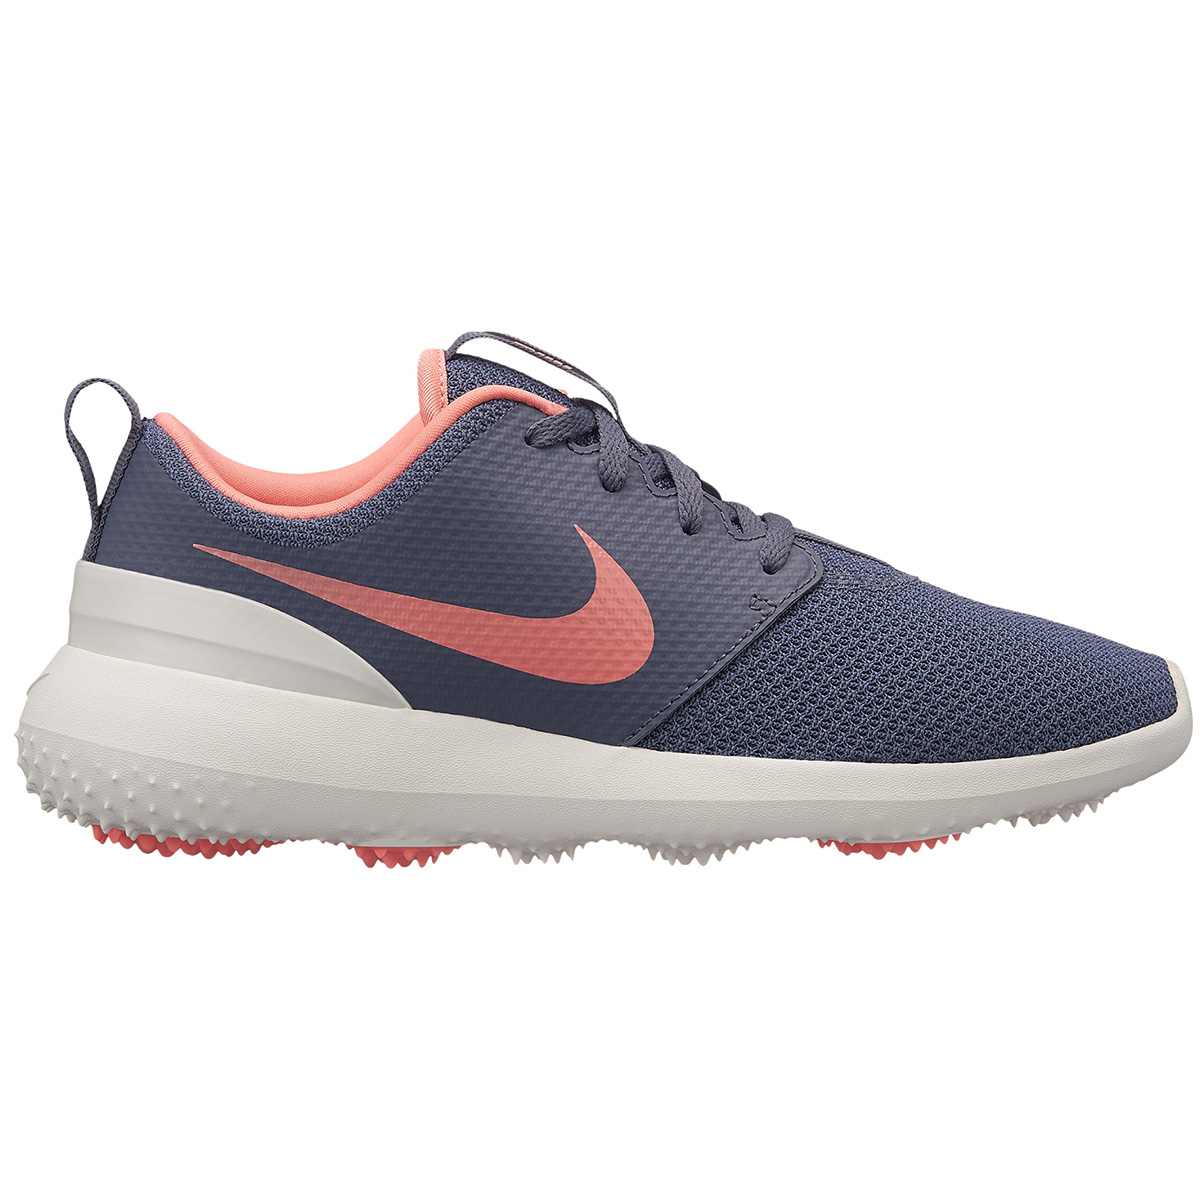 737b9bc36037 Nike Golf Roshe G Ladies Shoes from american golf